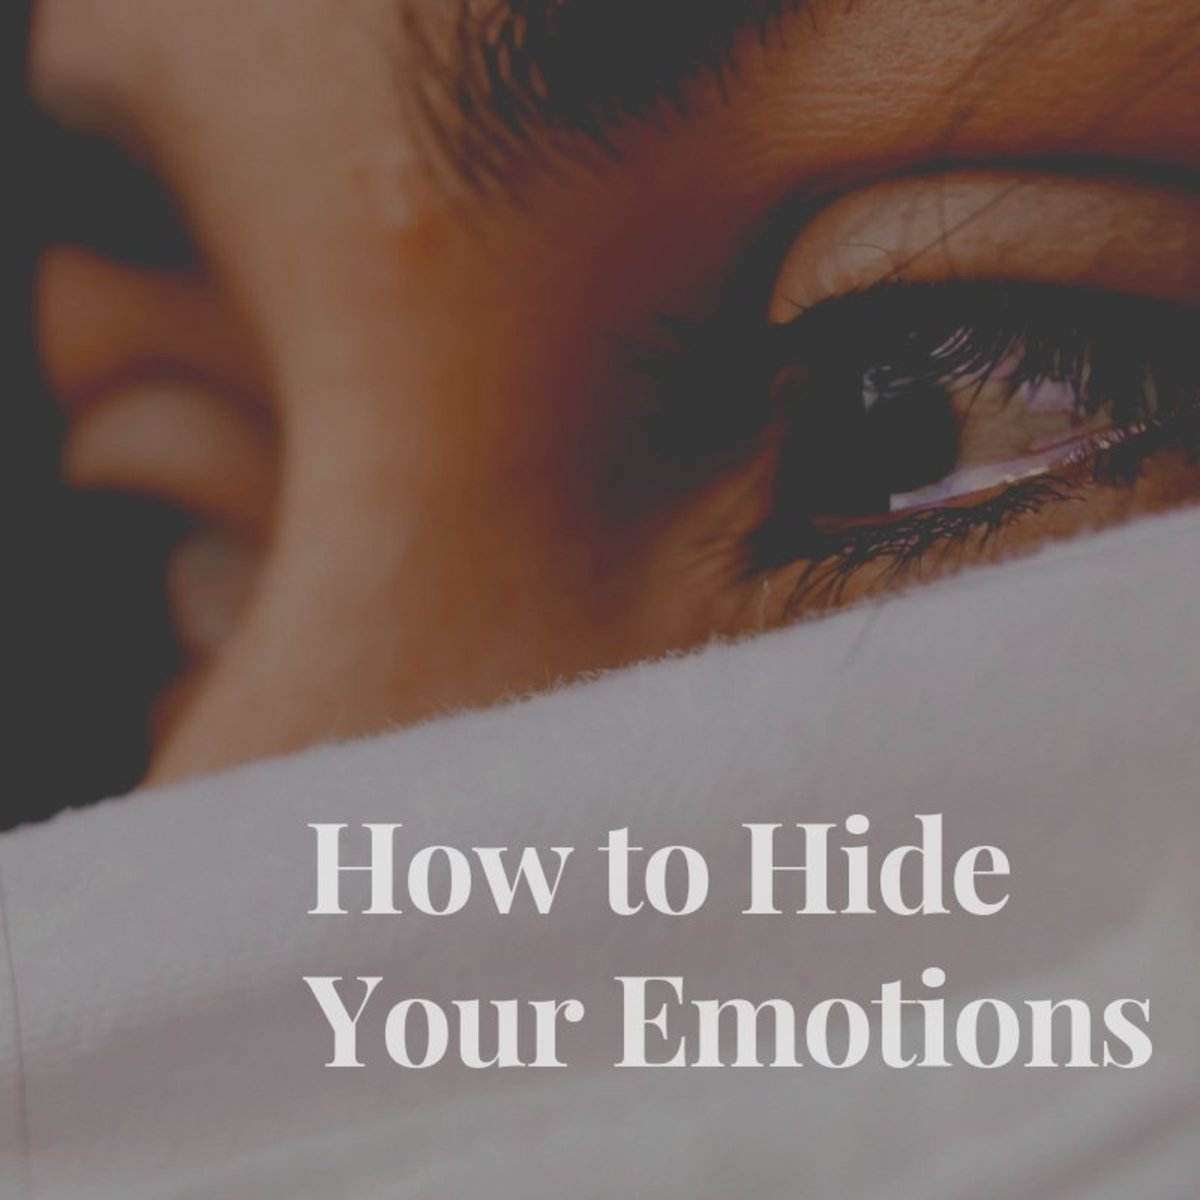 This article will teach you all the tips and tricks you need to know in order to conceal your emotions.